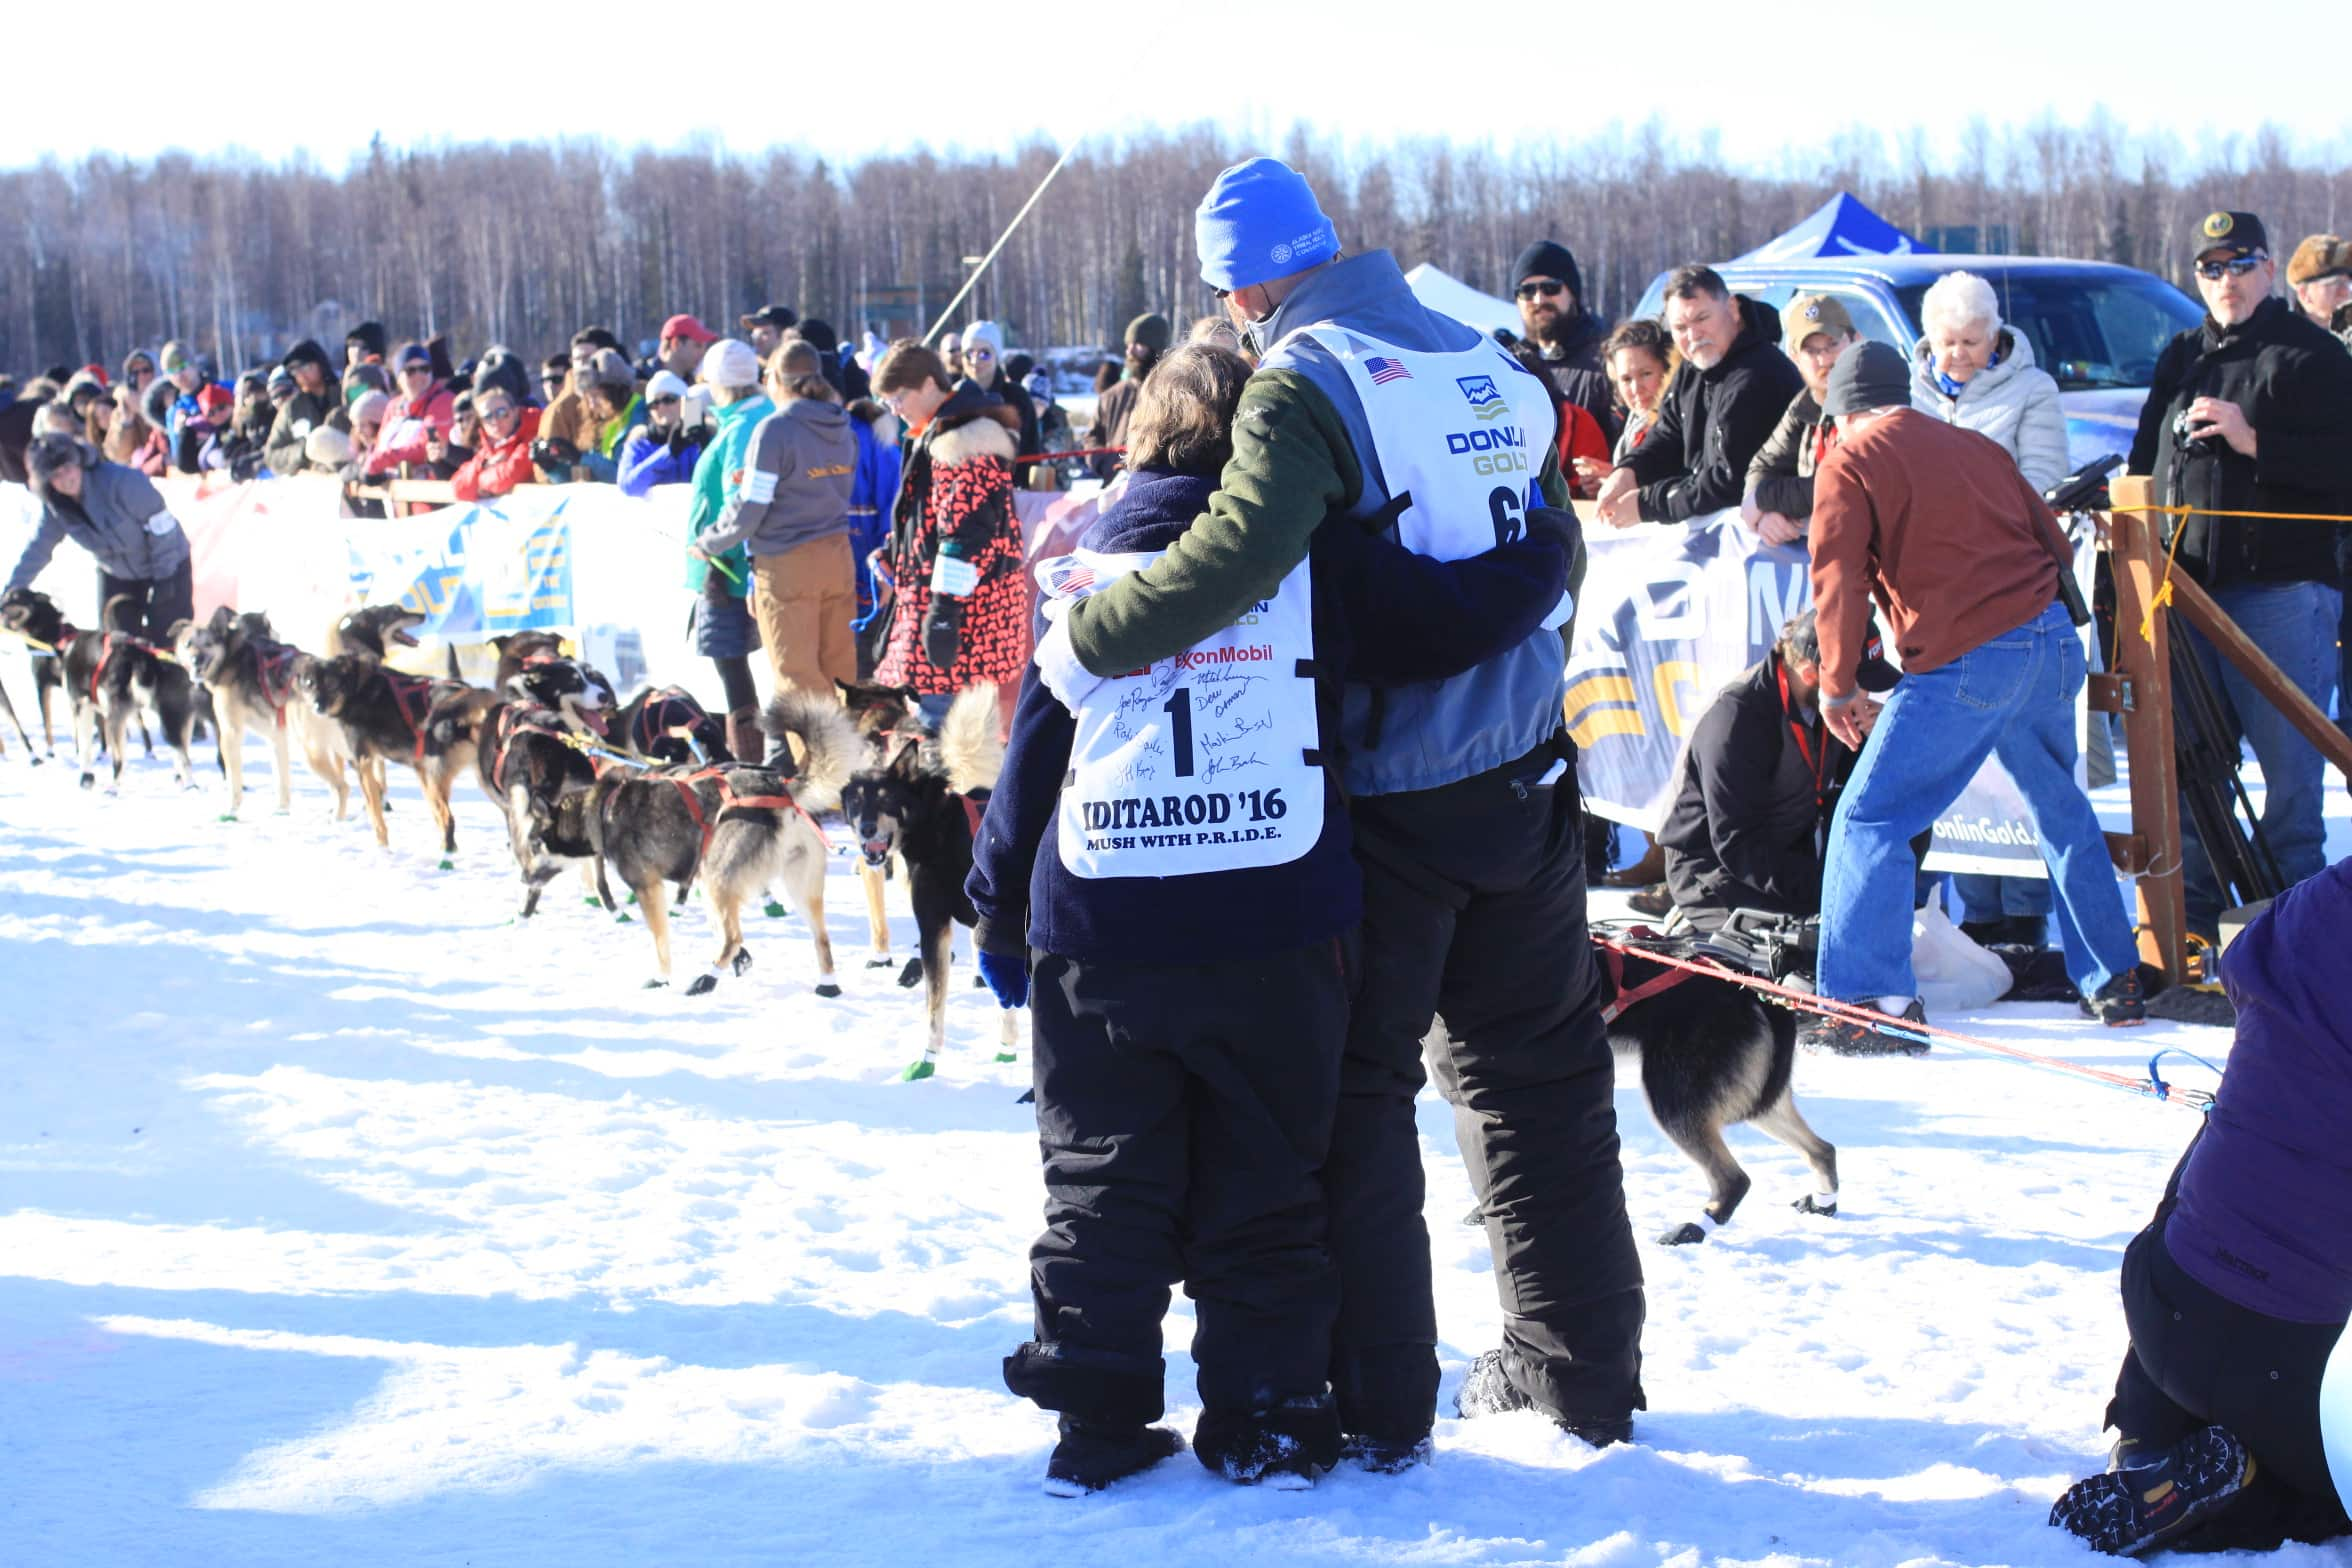 Scott Smith Takes 10th in the 2016 Iditarod